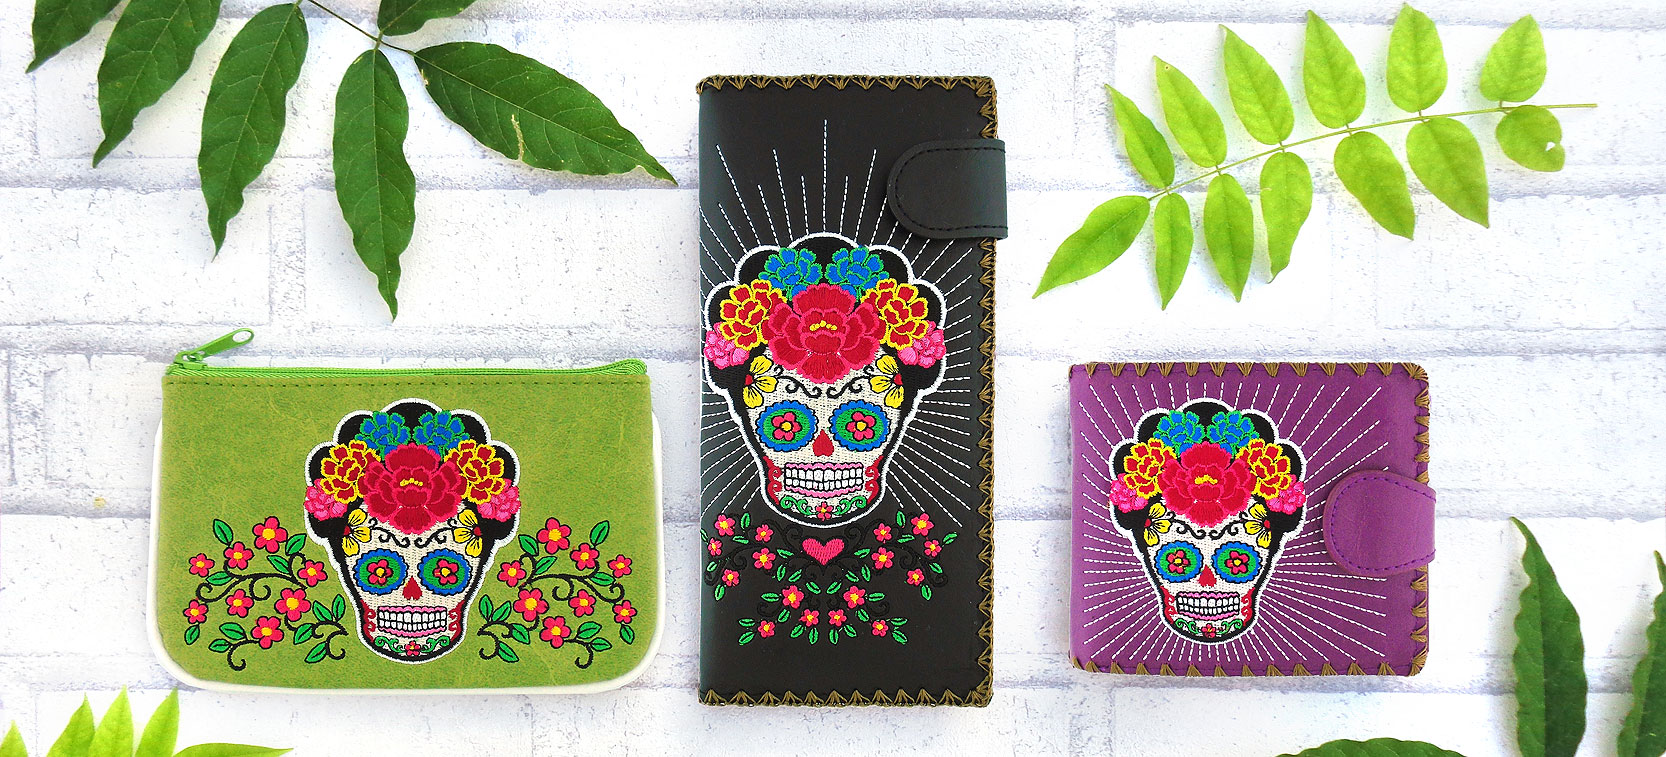 LAVISHY design and wholesale Mexico themed vegan accessories and gfits to gift shops, boutiques and book stores in Canada, USA and worldwide.